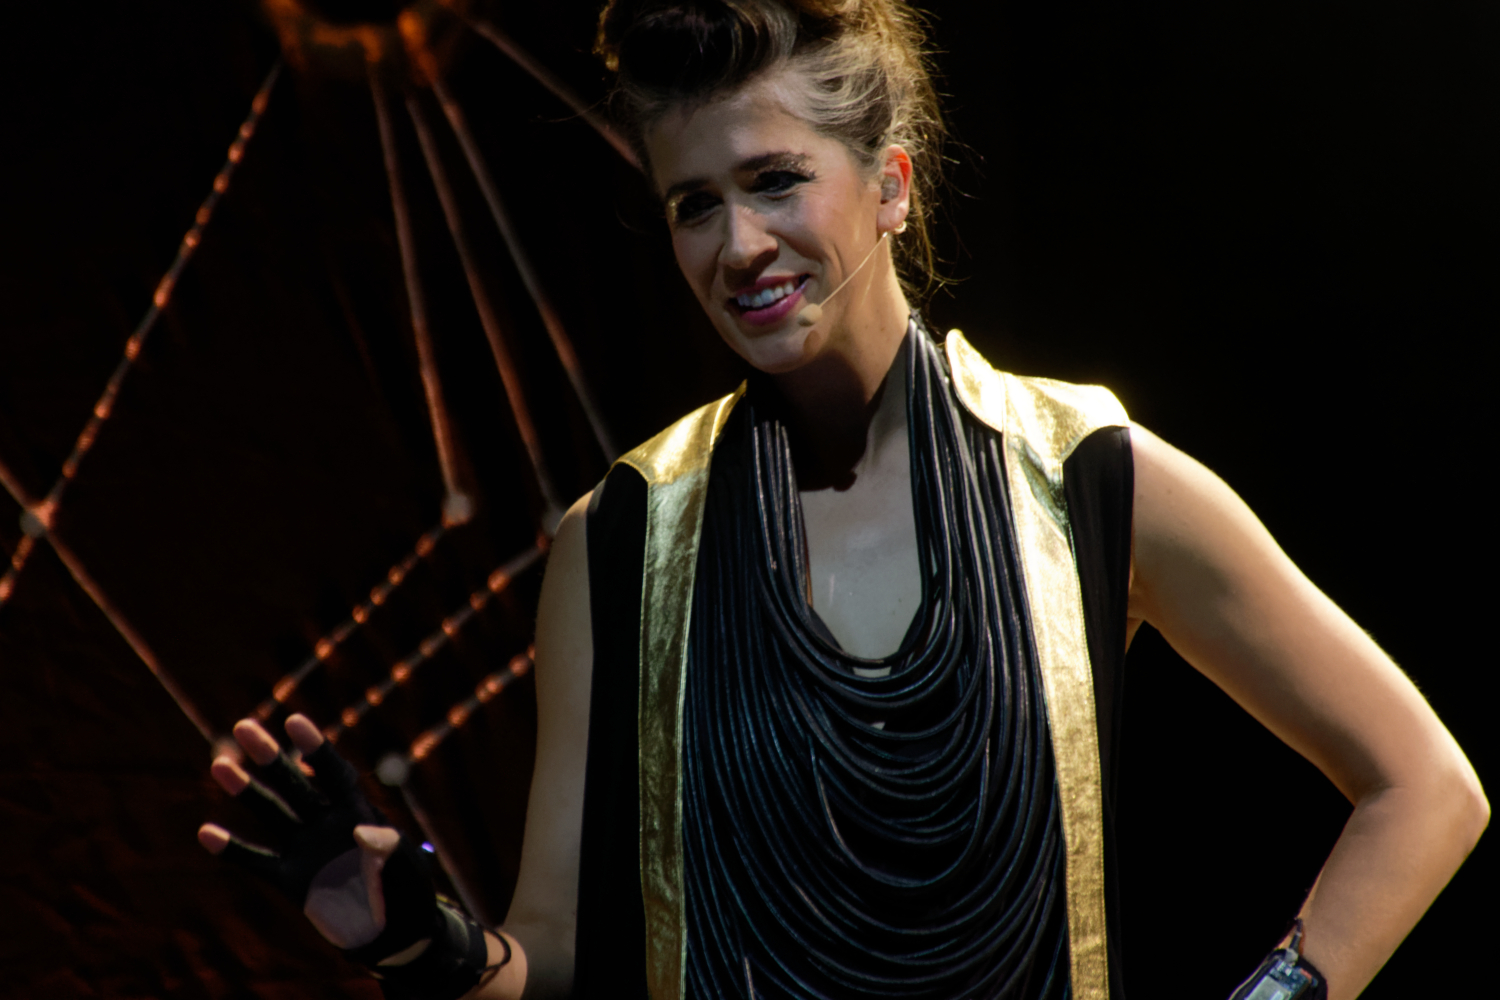 20190608 002 The Masonic - Imogen Heap.jpg